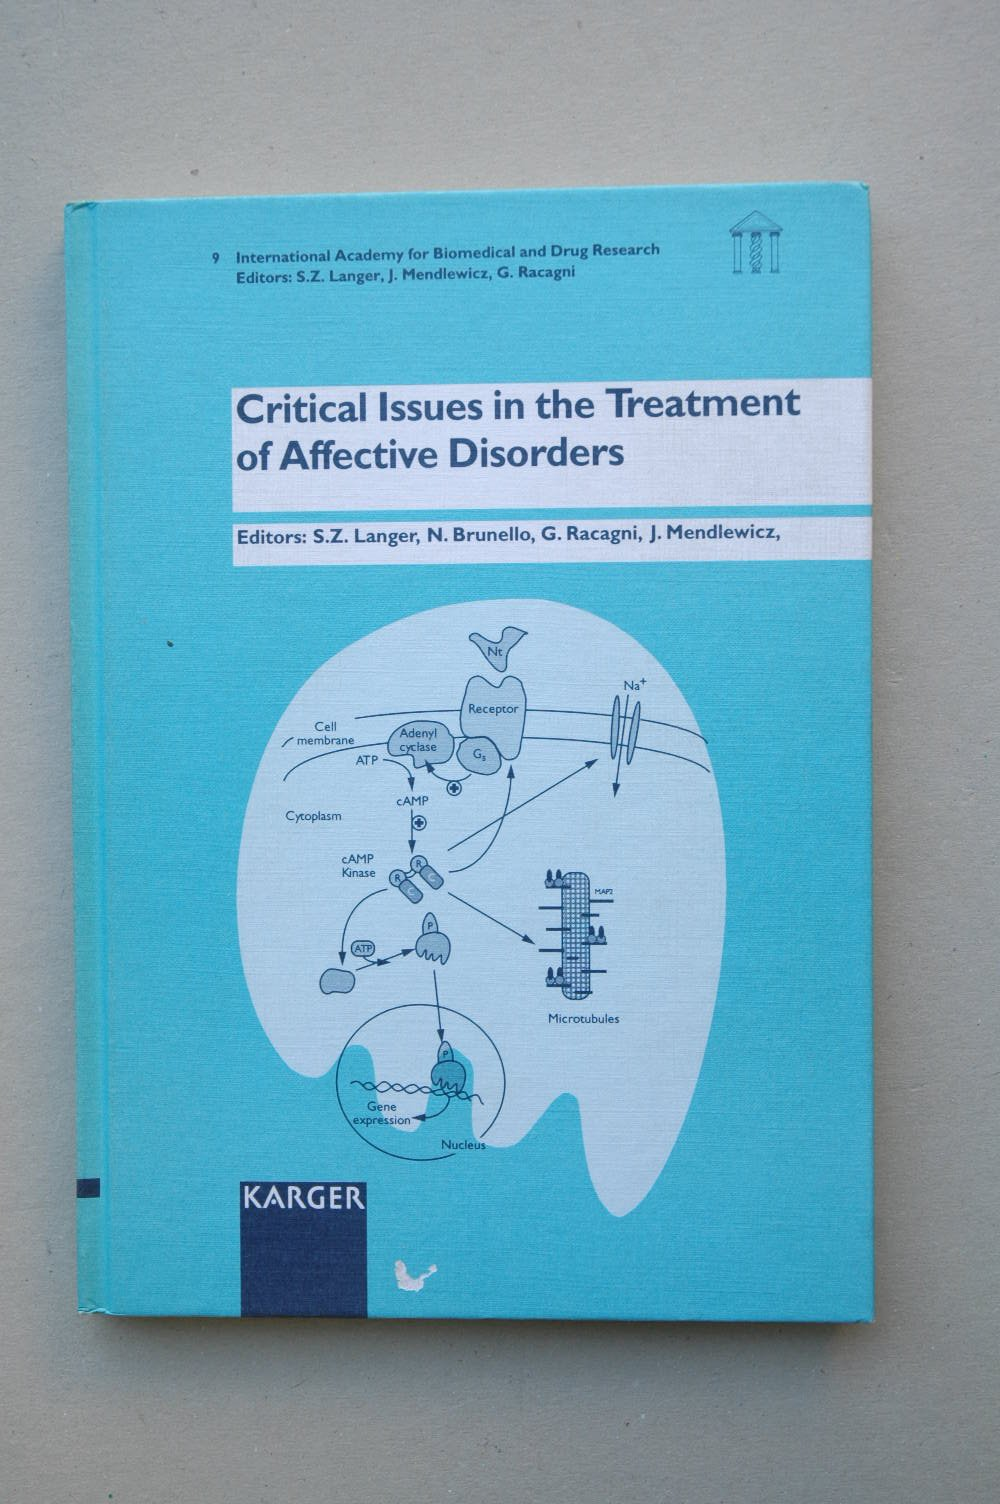 Critical Issues in the Treatment of Affective Disorders: Collegium Internationale Neuro-Psychopharmacologicum (C.I.N.P.), Regional Workshop, Paris, ... for Biomedical and Drug Research, Vol. 9)